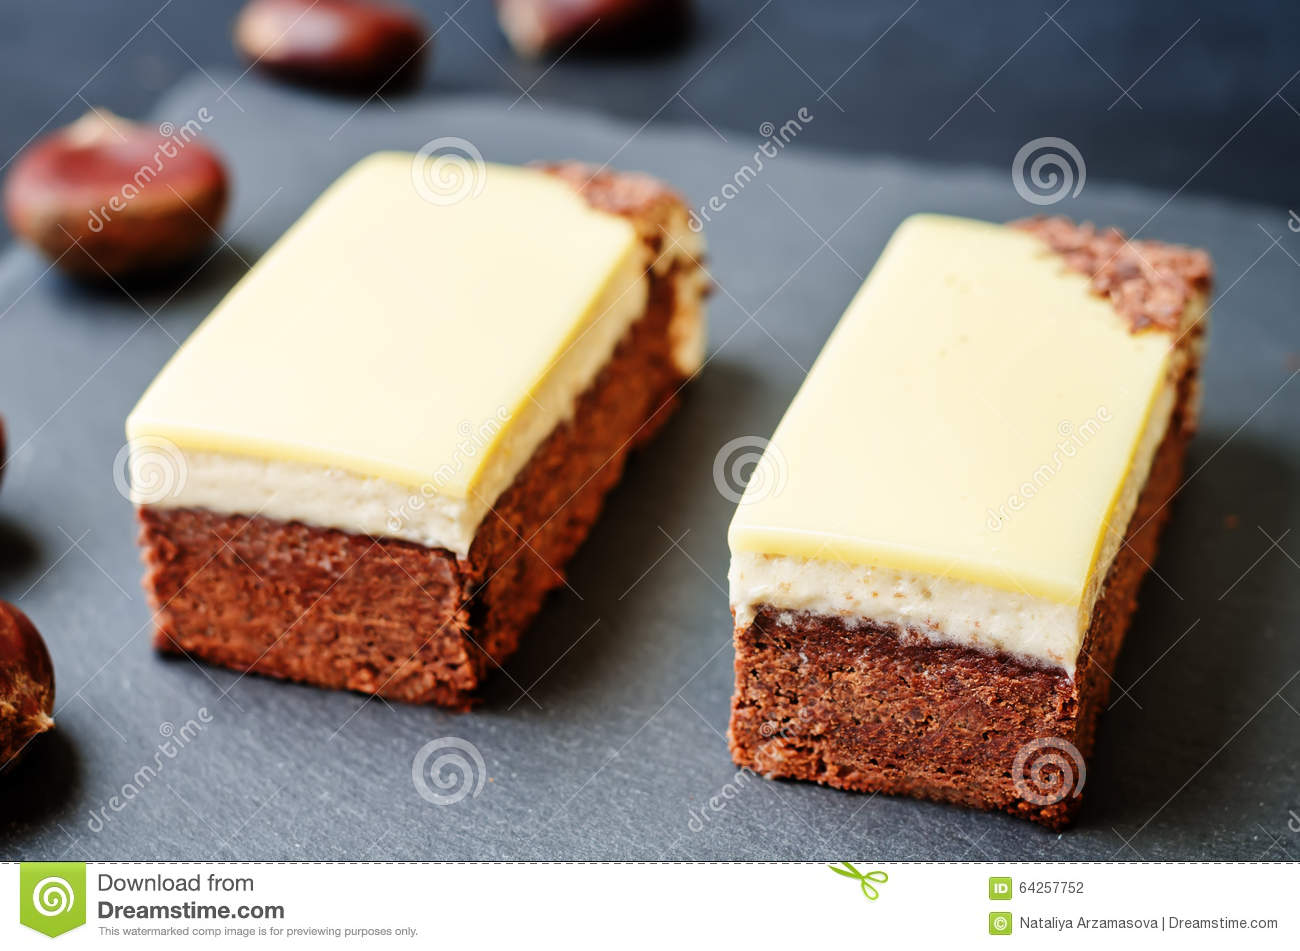 Chestnut brownie cake with chestnut white chocolate mousse